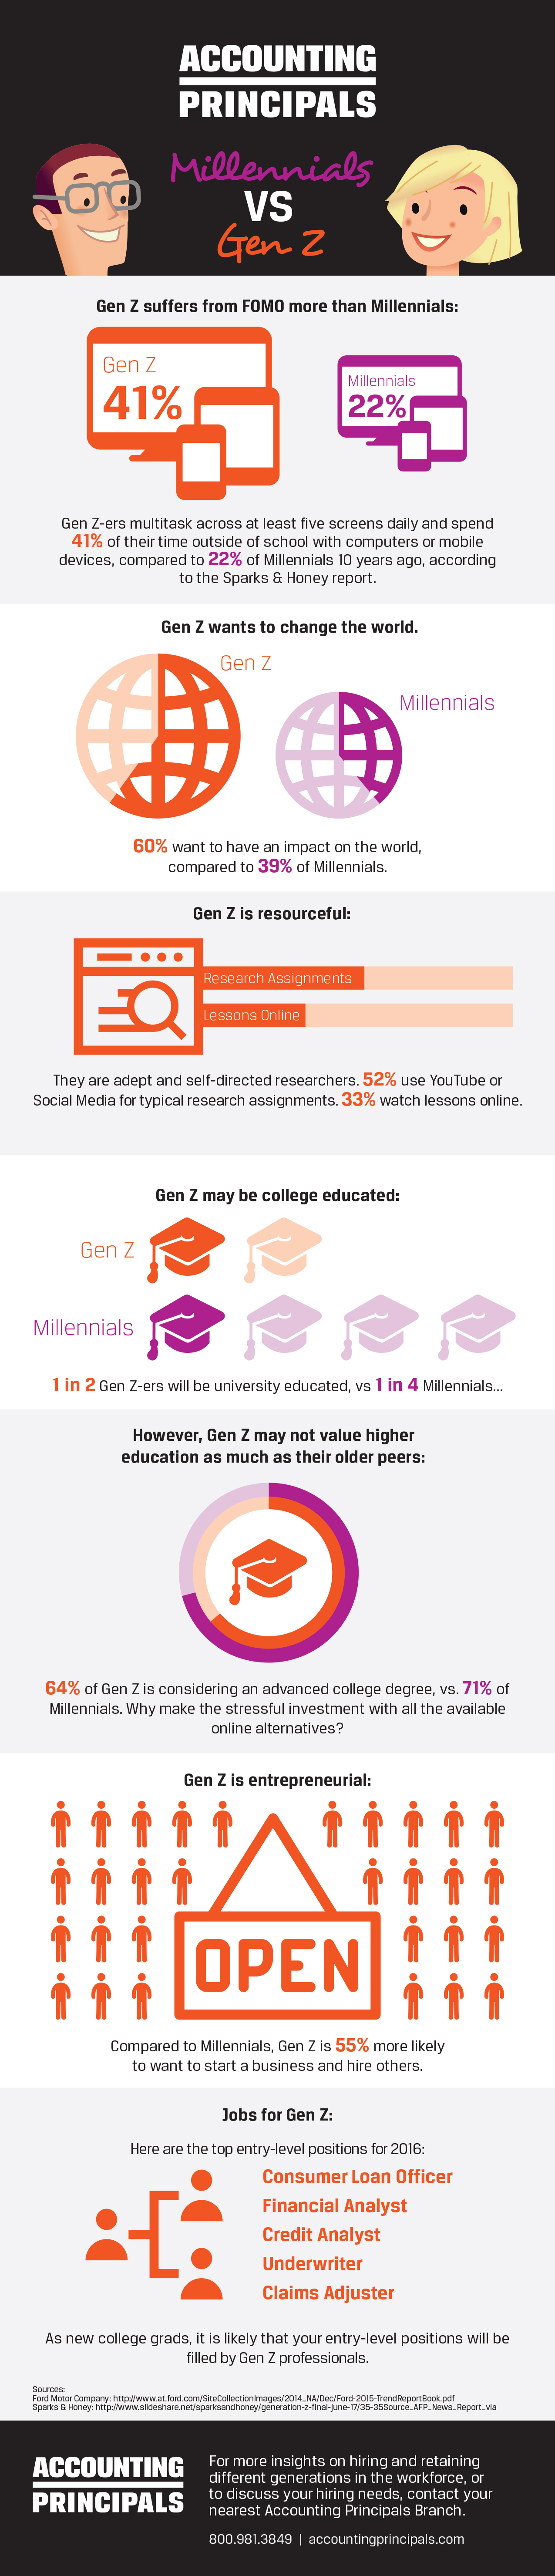 Millennials vs Generation Z Infographic